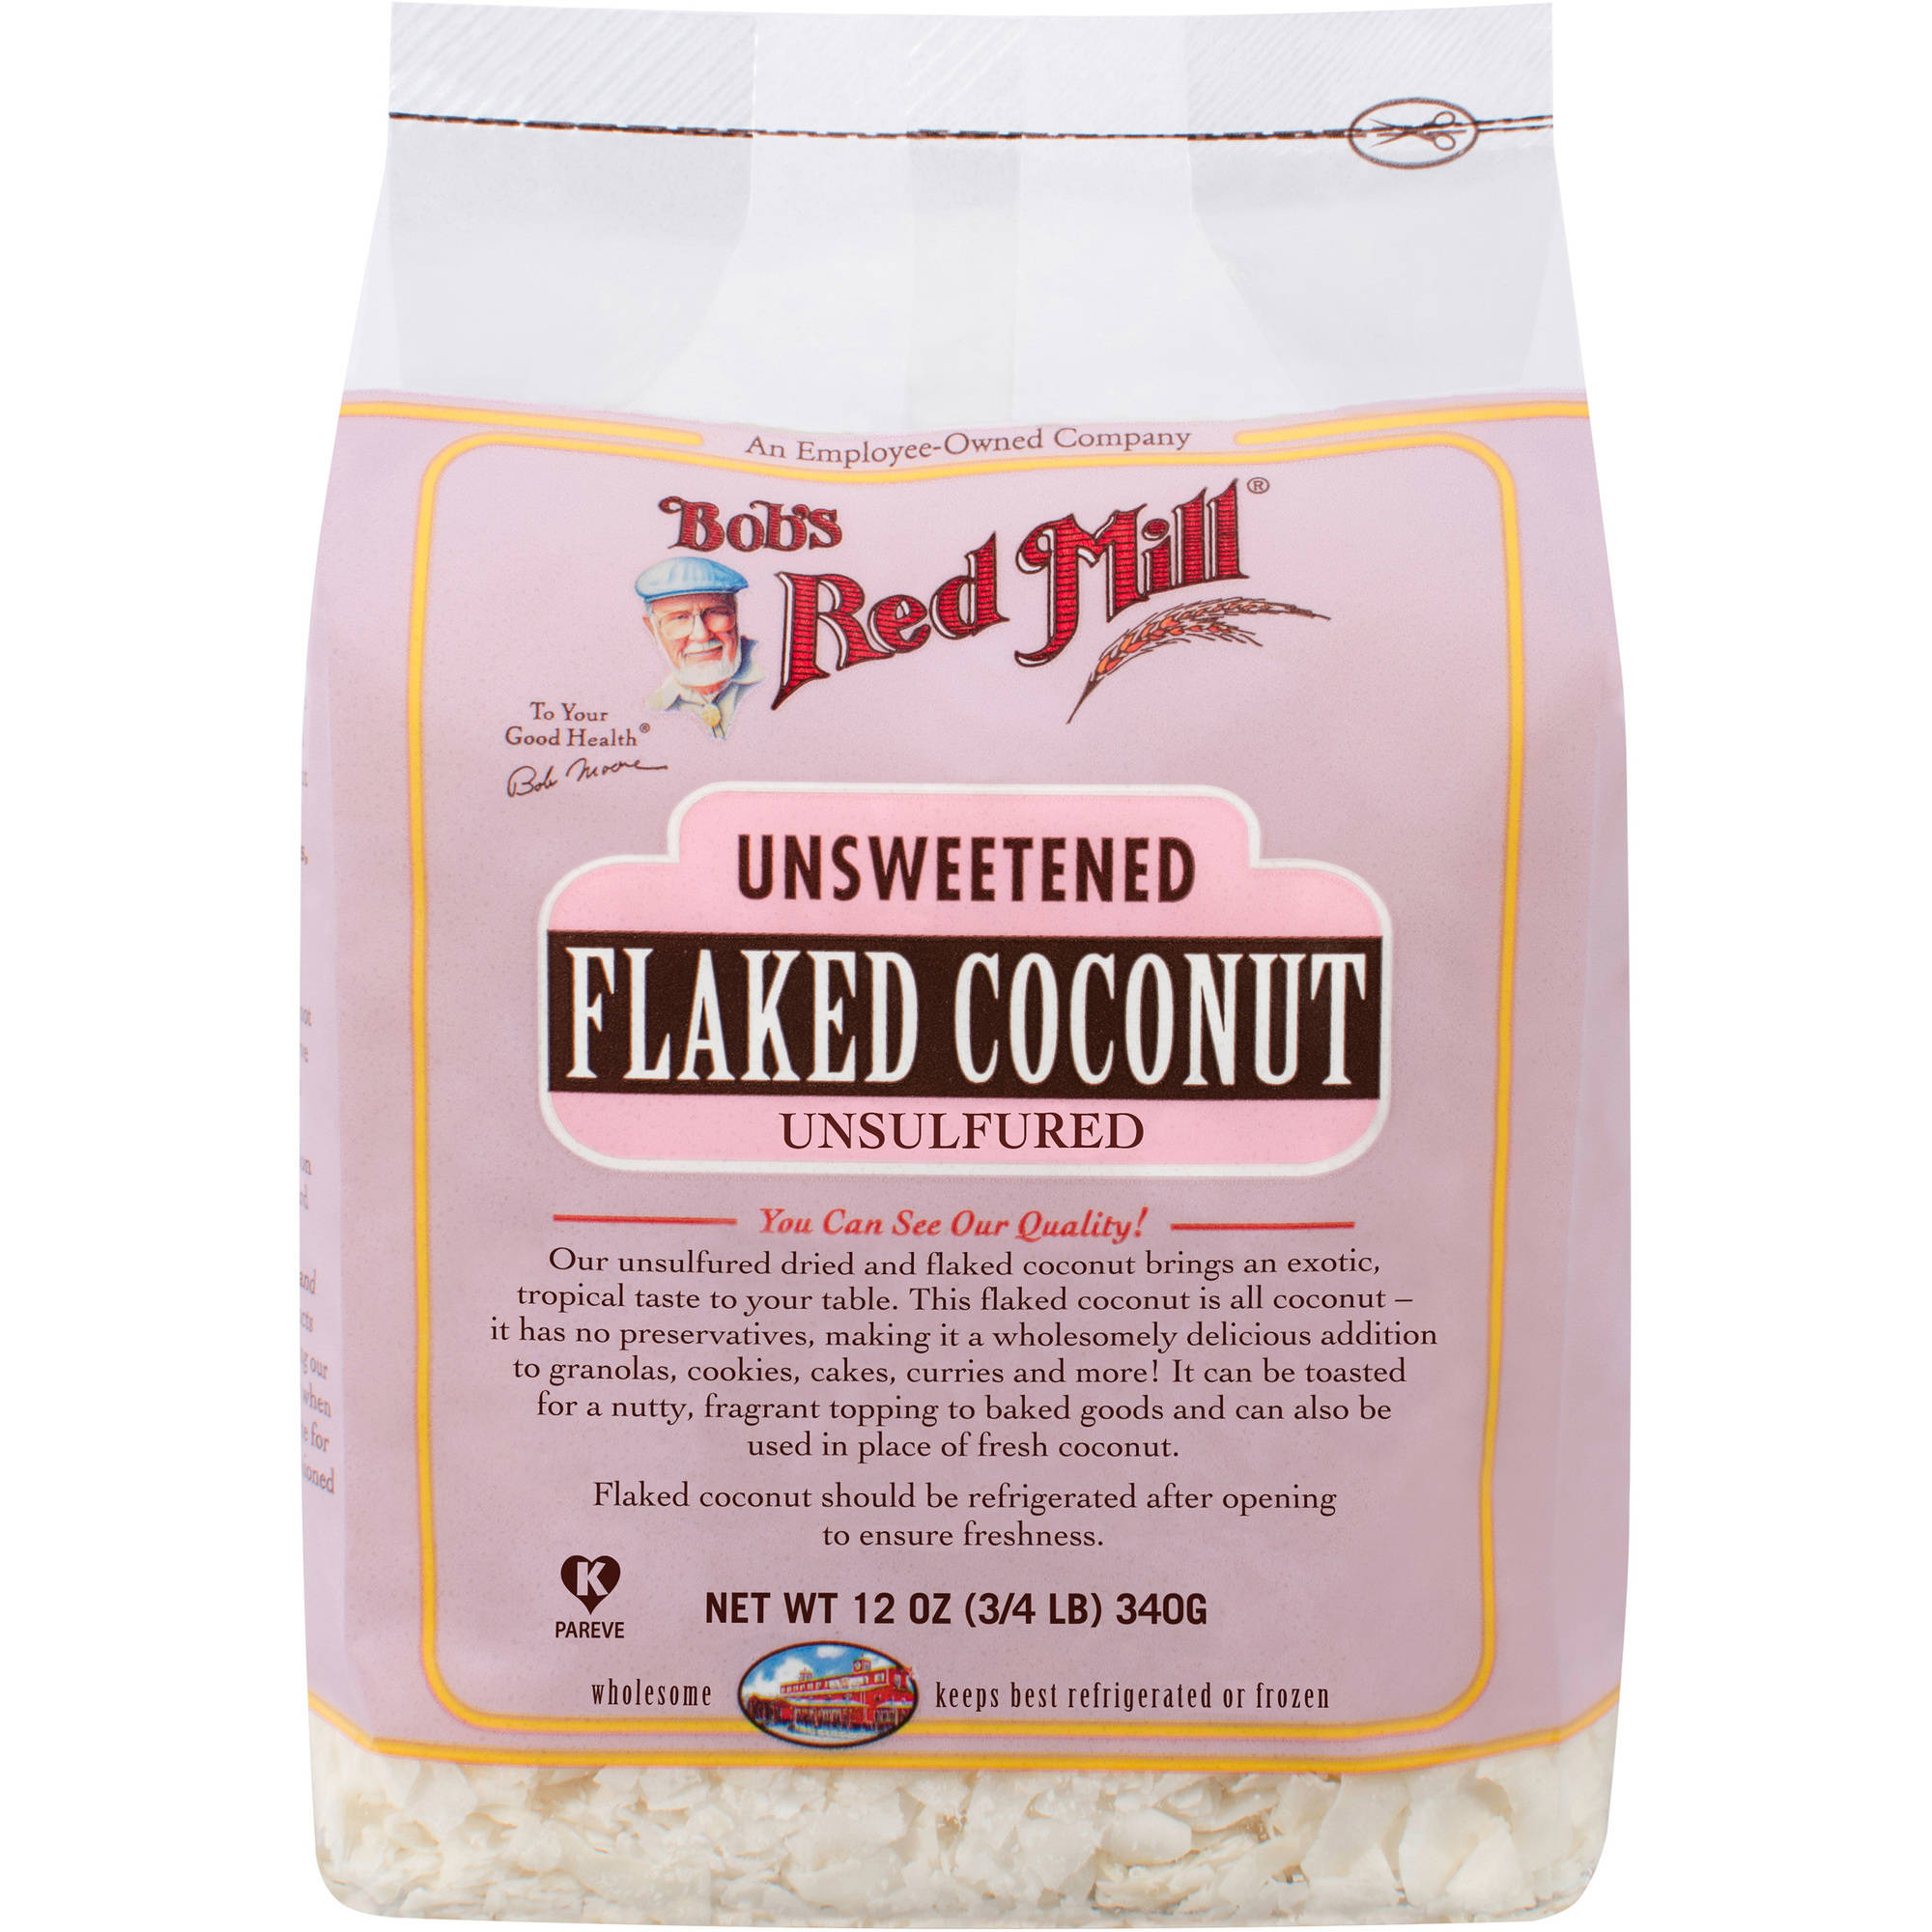 Bob's Red Mill Flaked Unsweetened Coconut, 12 oz (Pack of 4)